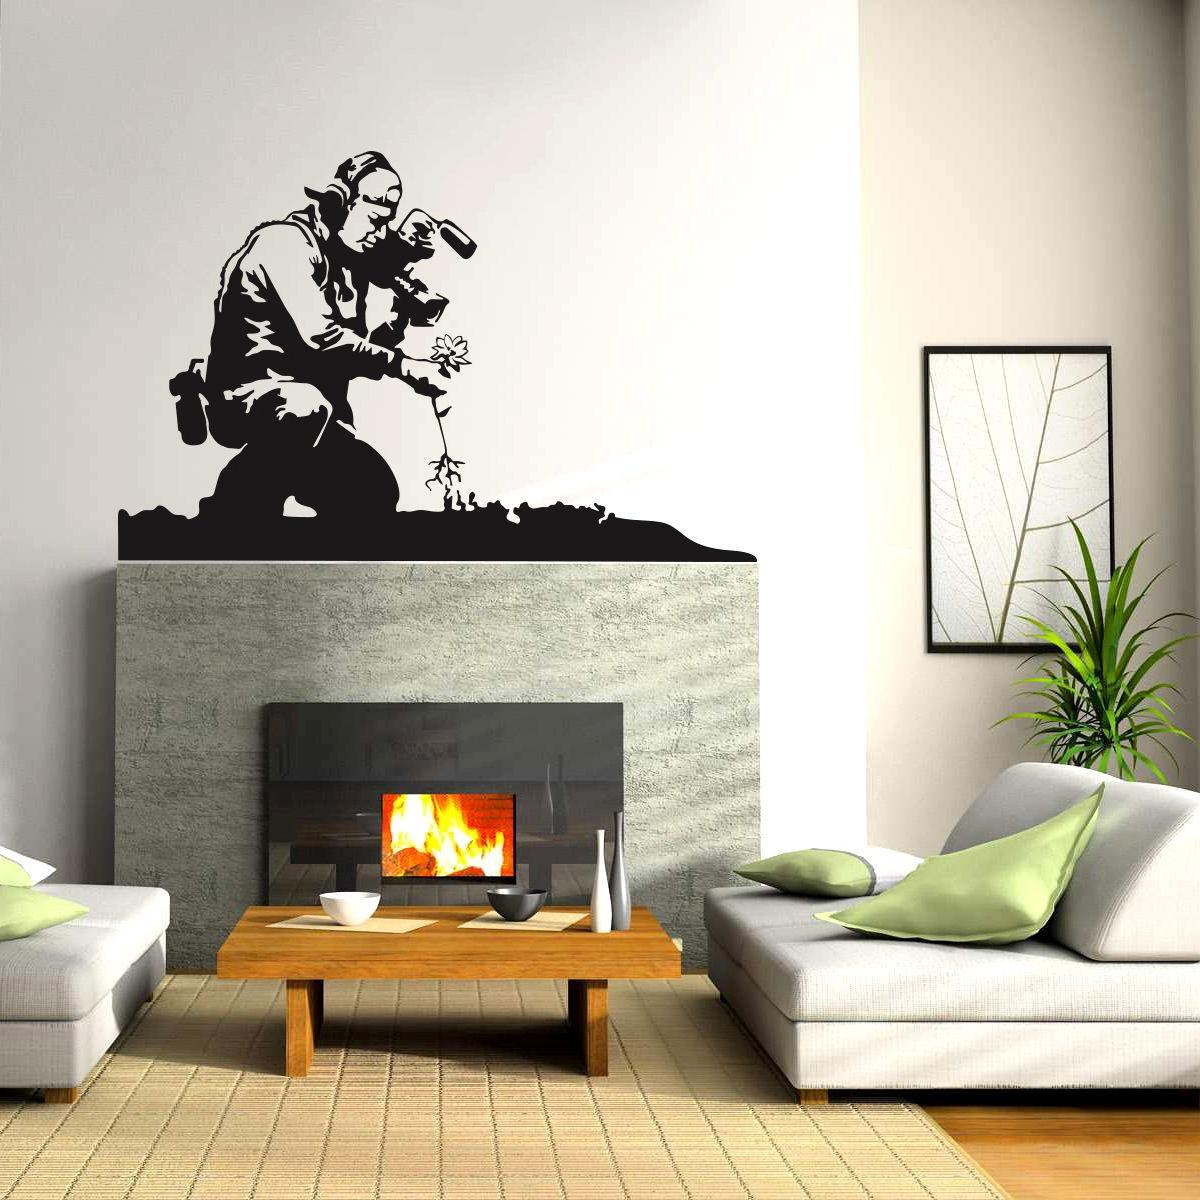 Online Get Cheap Street Art Wall Decal Aliexpress | Alibaba Group Regarding Street Wall Art Decals (View 20 of 20)